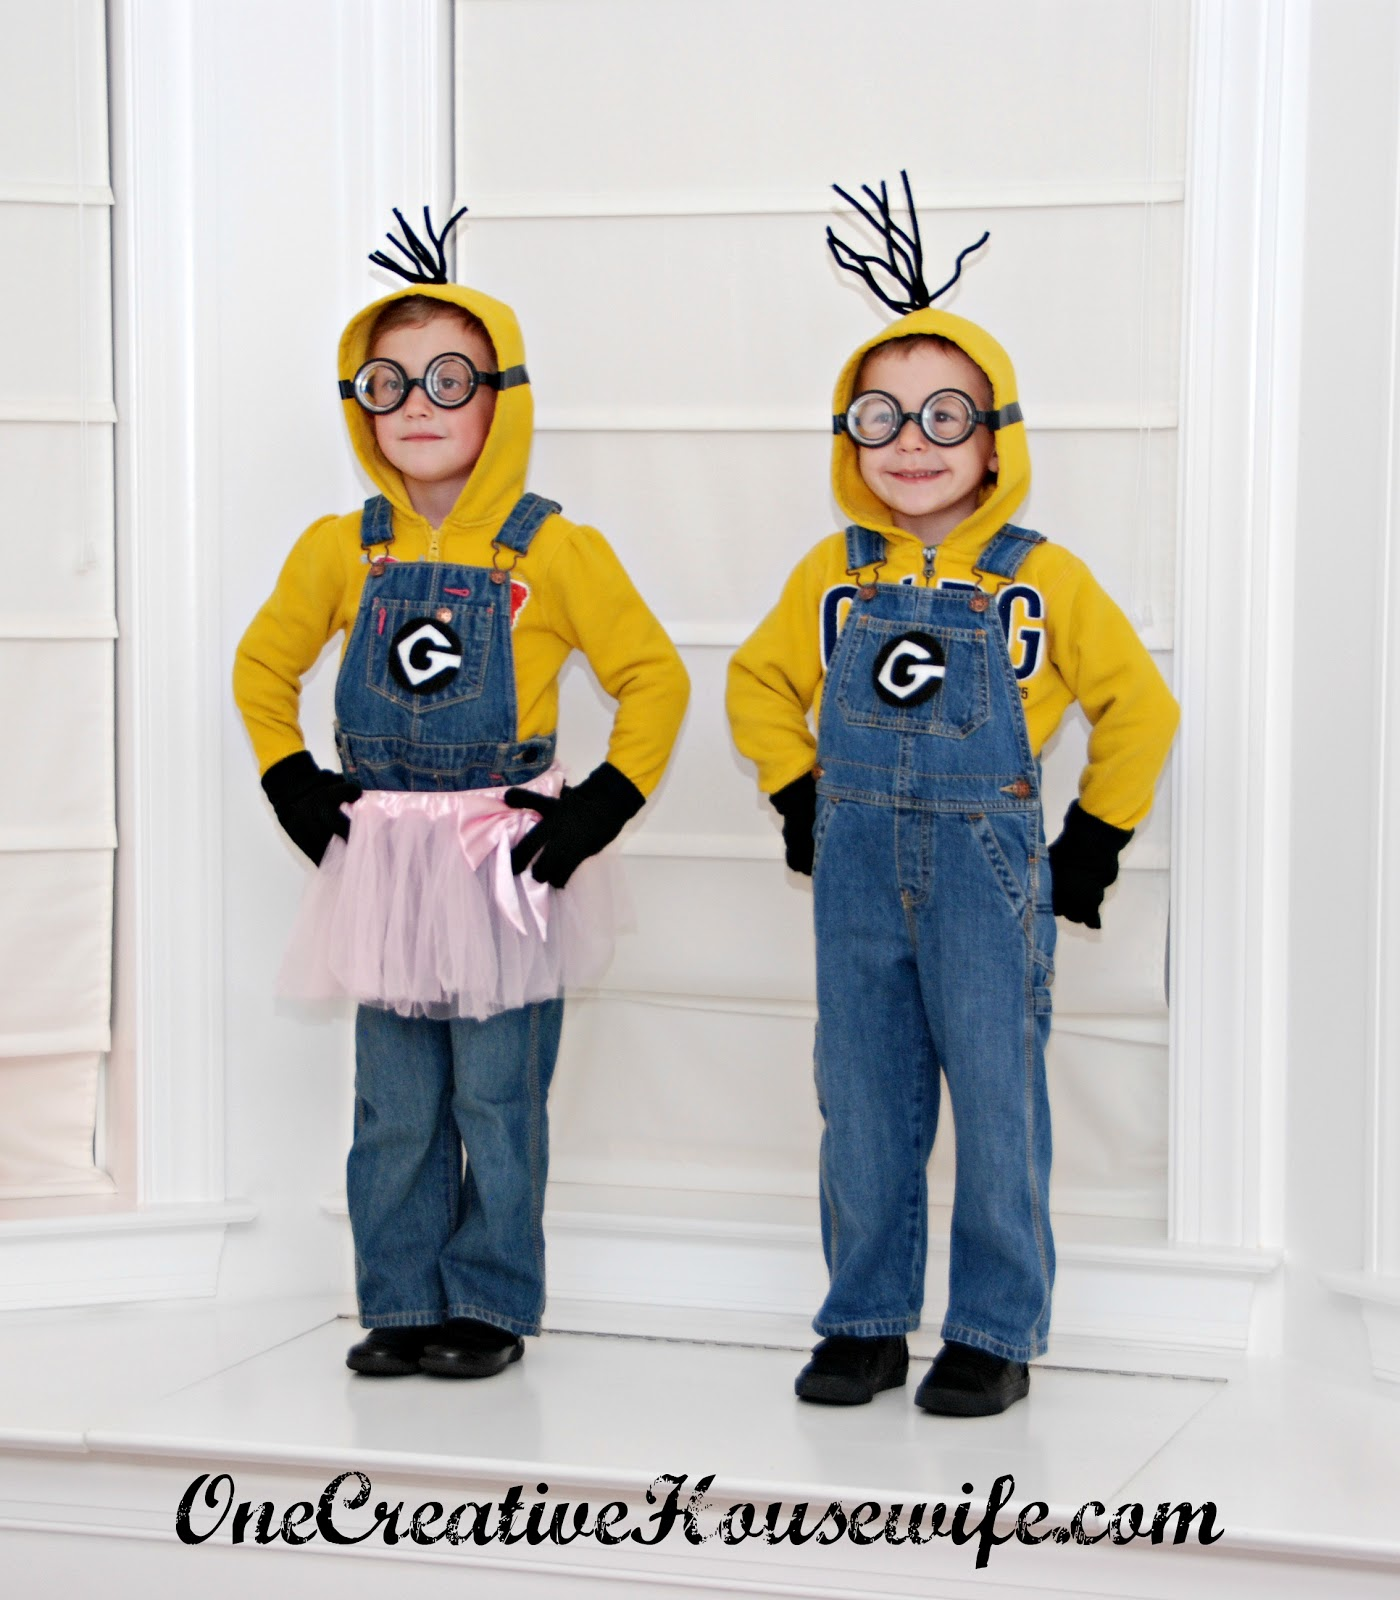 Creative Halloween Decoration Ideas: One Creative Housewife: Despicable Me Minion Costumes